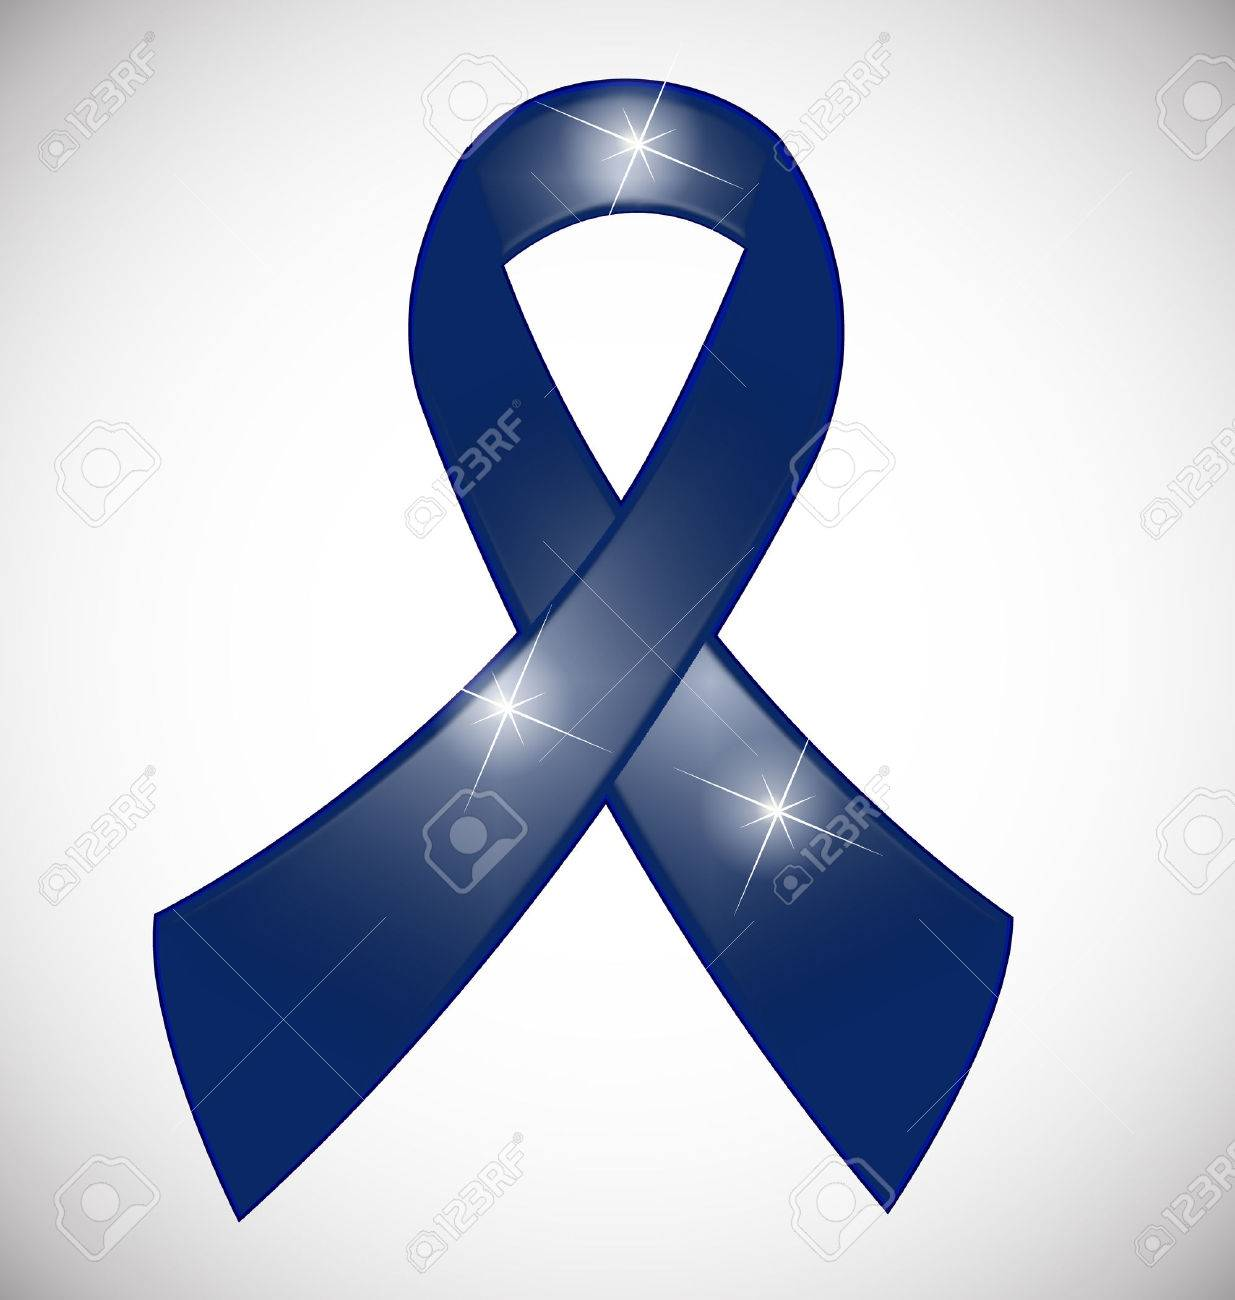 153 colon cancer ribbon stock vector illustration and royalty free blue ribbon awareness symbol vector illustration biocorpaavc